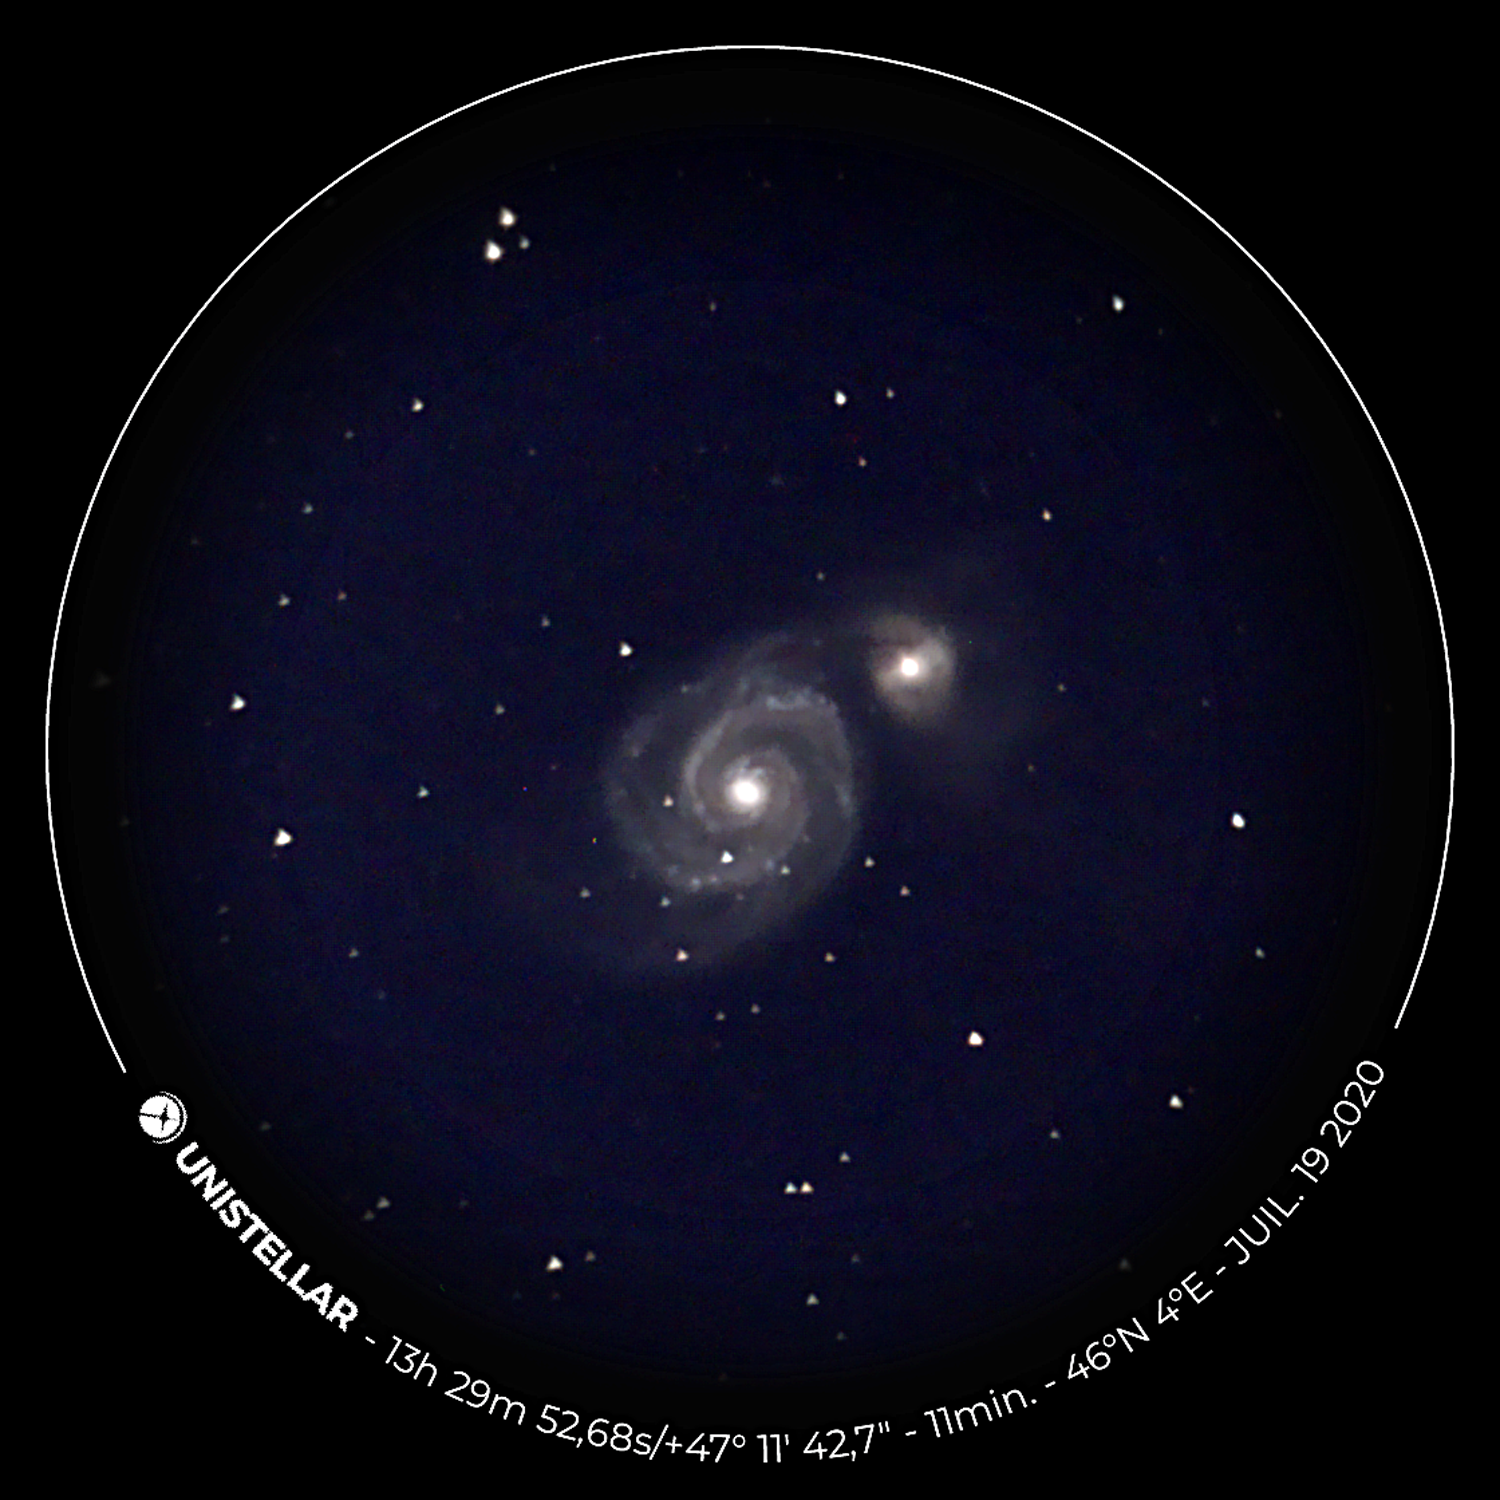 eVscope-20200718-220633.png